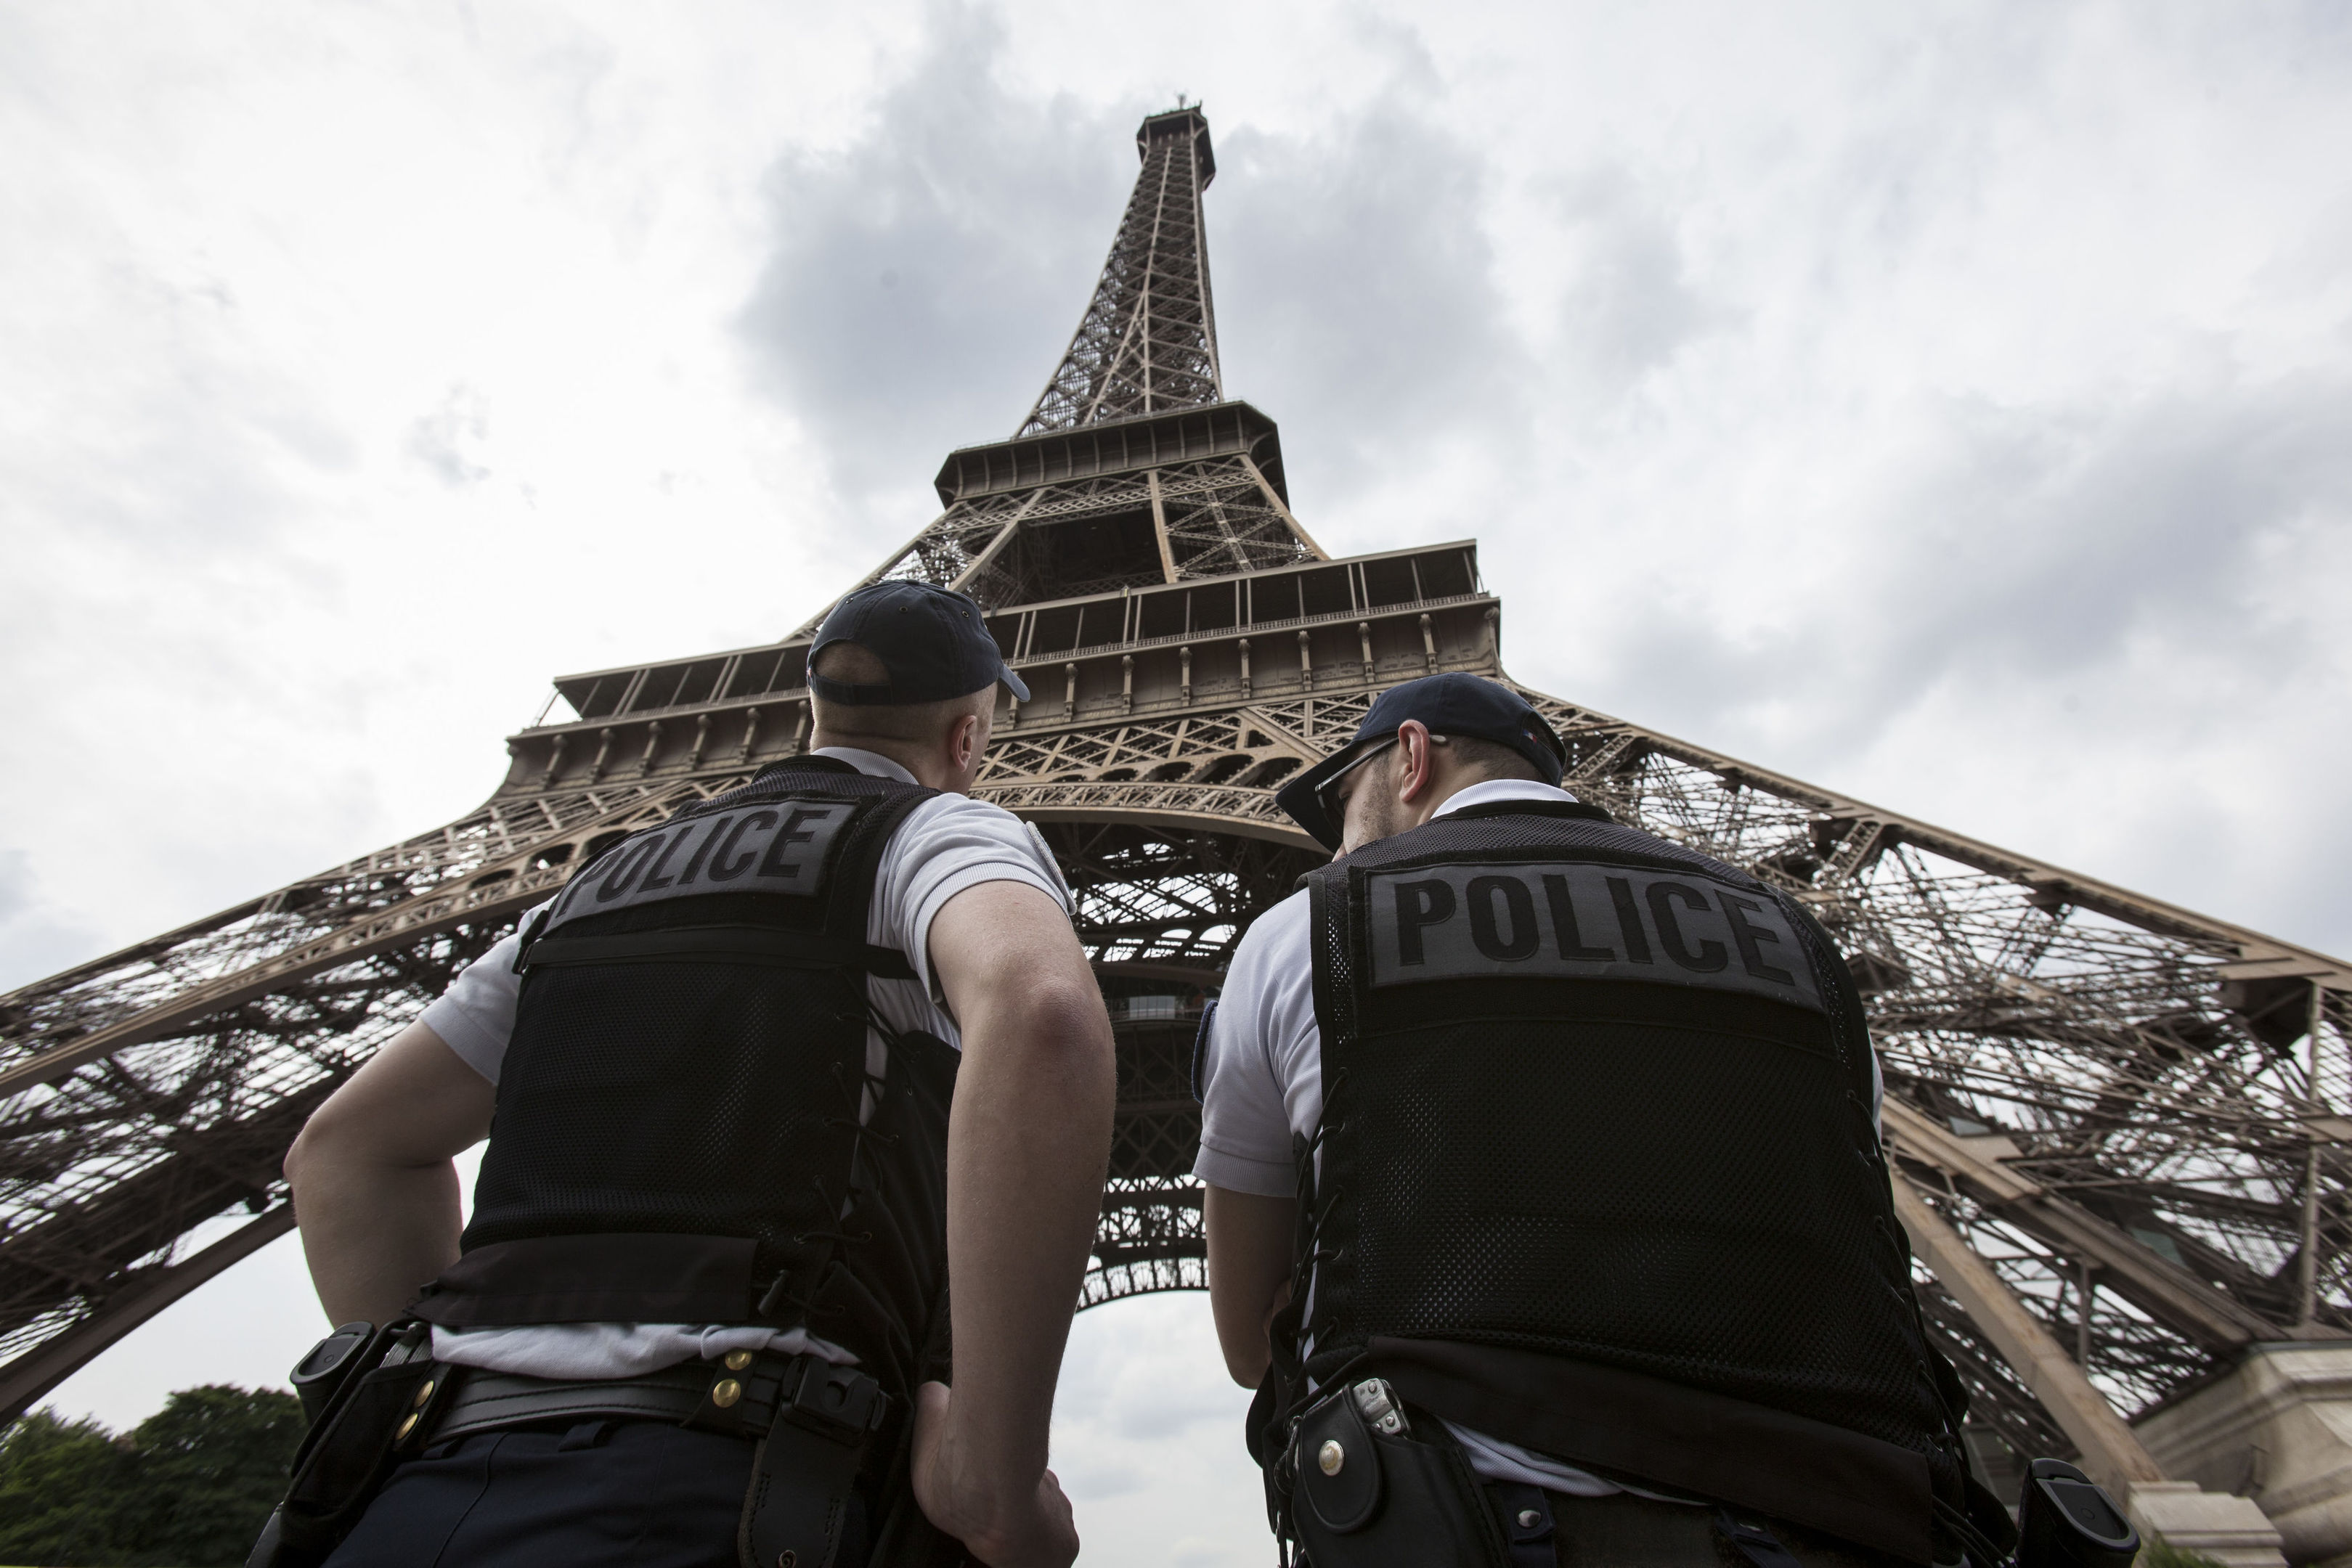 French riot police officers patrol under the Eiffel Tower, in Paris. A young French man who recently was discharged from a psychiatric hospital is under investigation for glorifying terrorism after he brandished a knife and tried to breach security at the Eiffel Tower, authorities said Sunday, Aug. 6, 2017. (AP Photo/Kamil Zihnioglu, File)